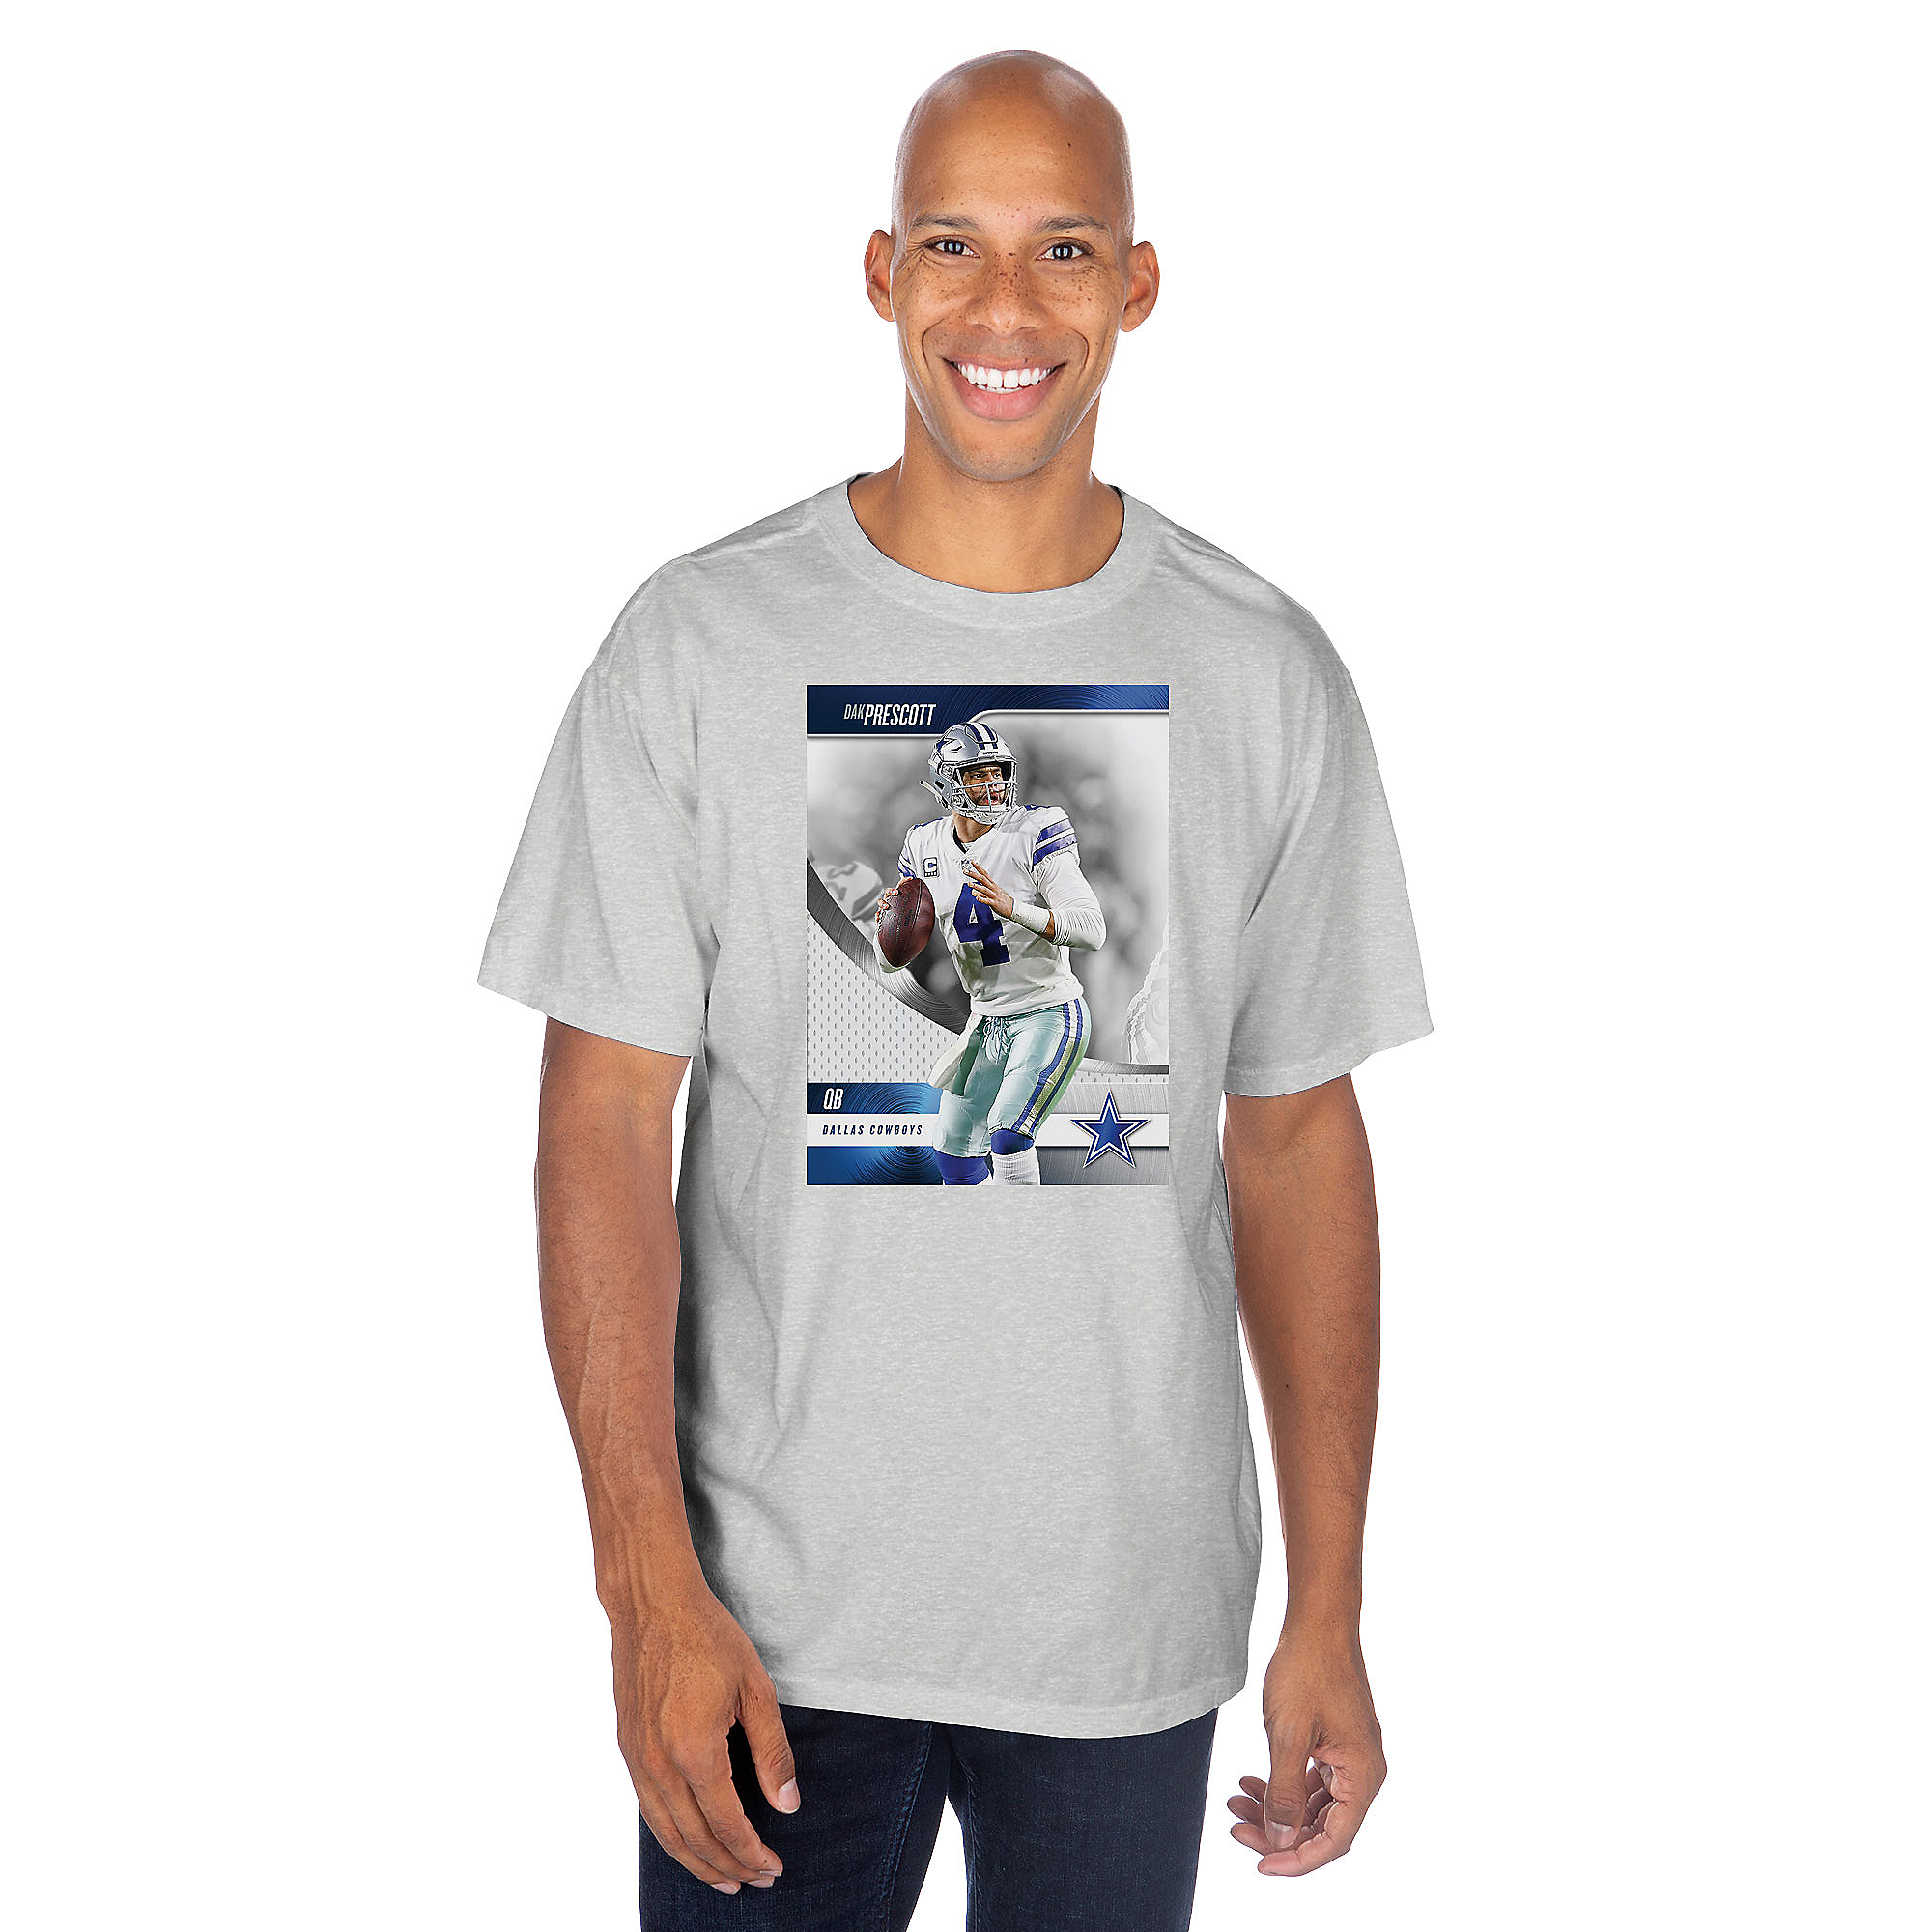 Dallas Cowboys America's Team Dak Prescott #4 T-Shirt